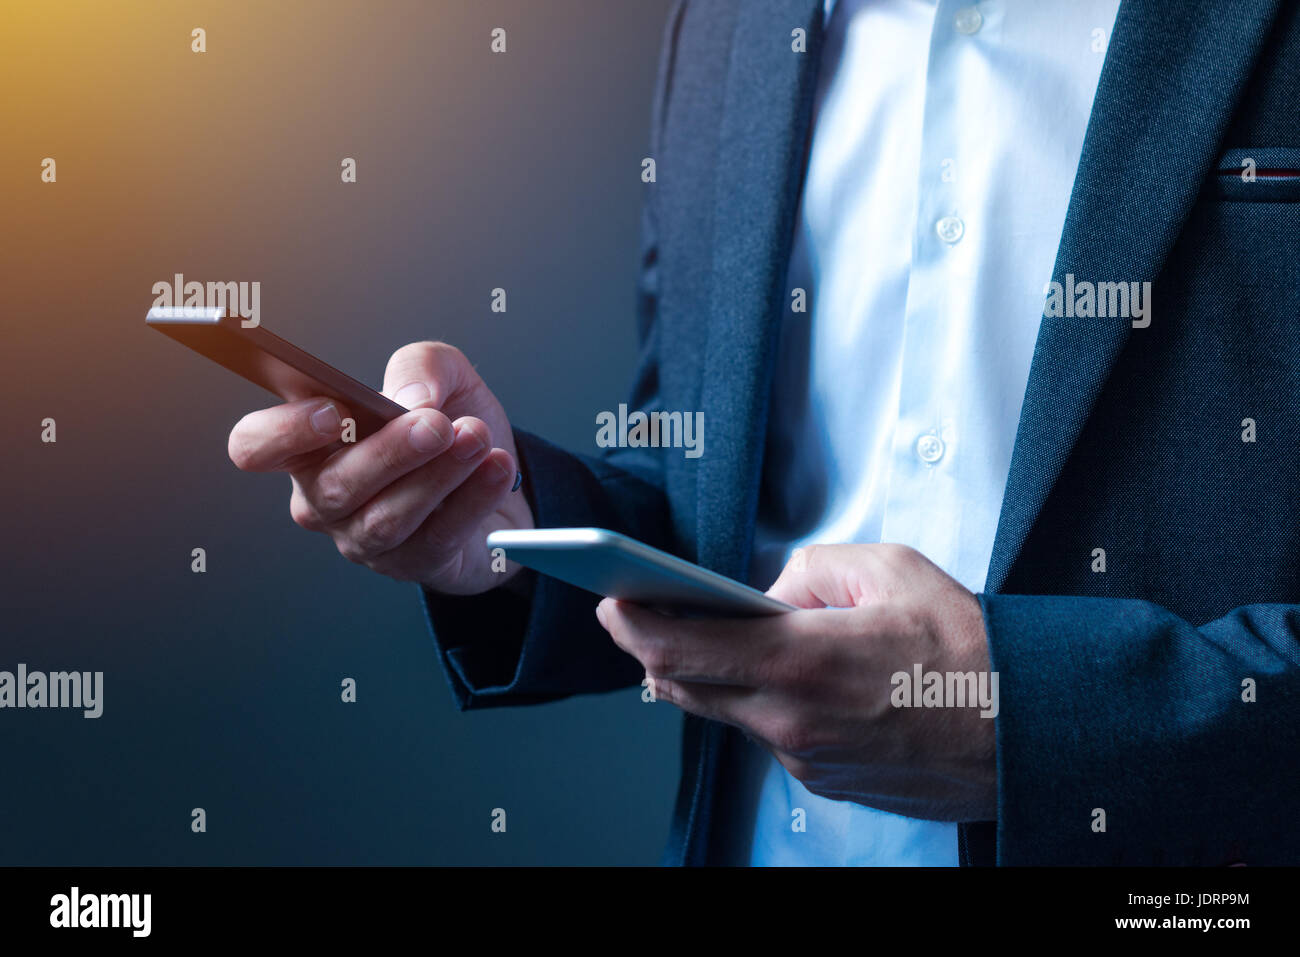 Sync and backup data on two mobile phones, man in business suit synchronizes files, messages and contact information - Stock Image